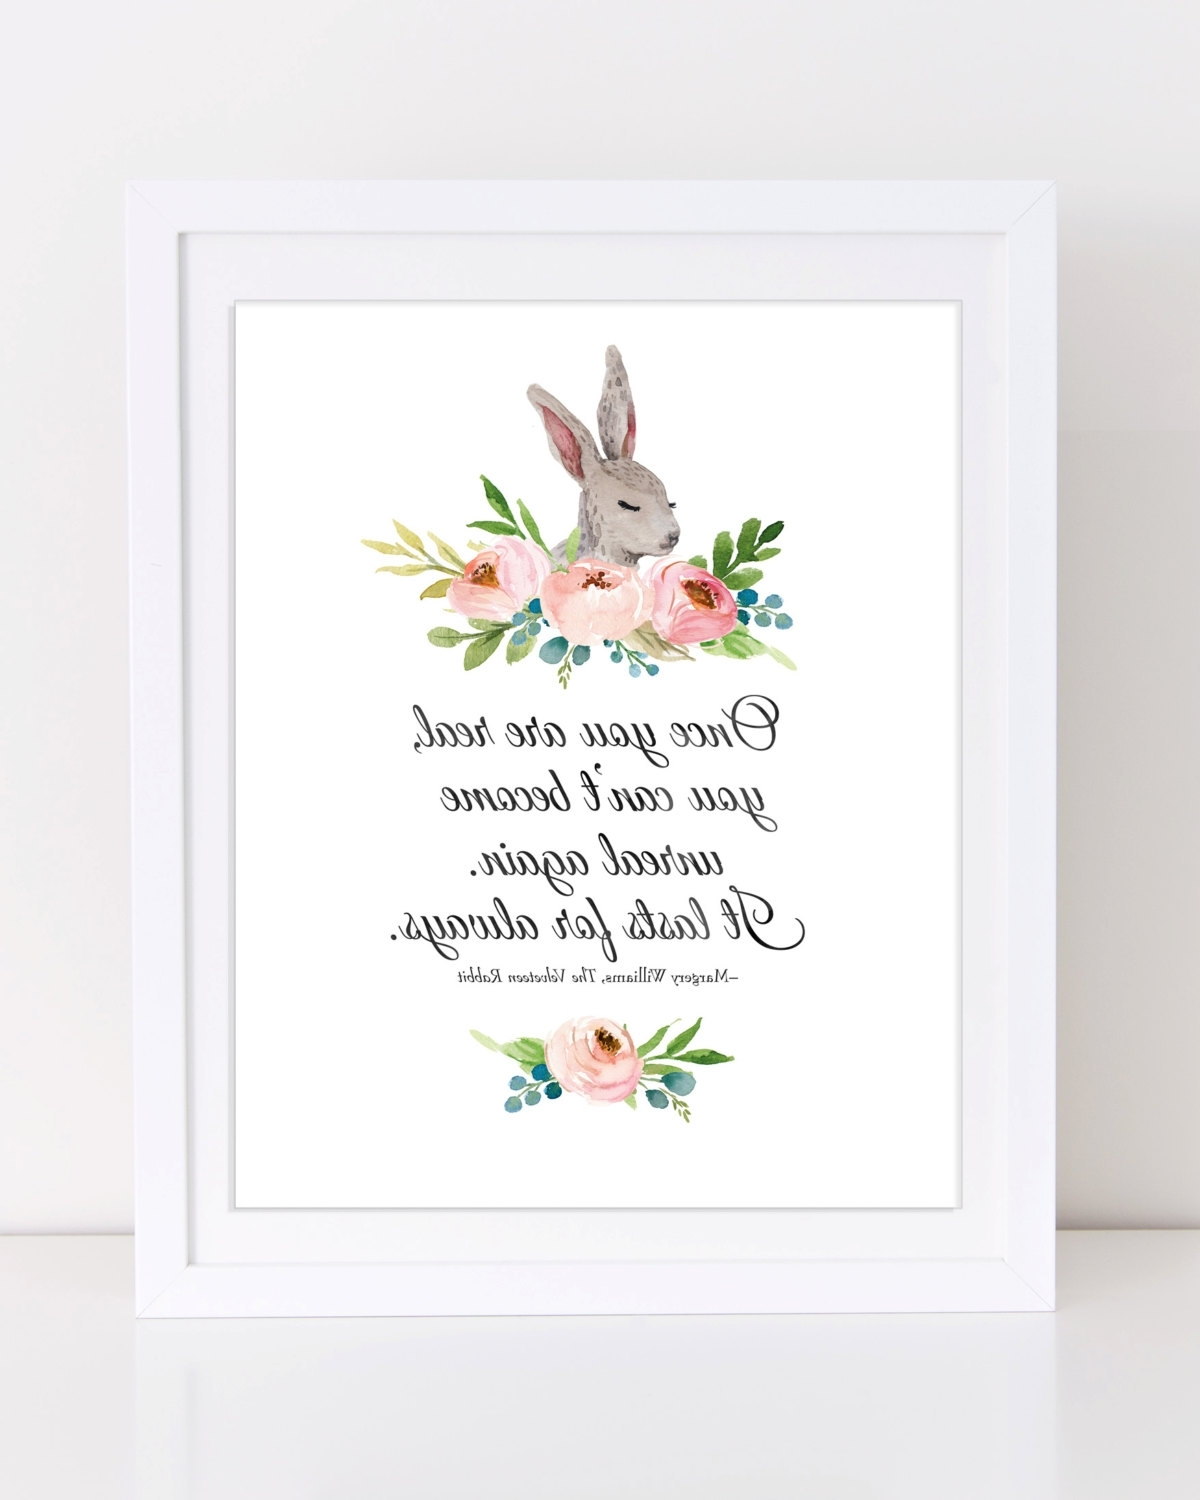 Velveteen Rabbit Wall Art Regarding Favorite Velveteen Rabbit Quote, Bunny Wall Art, Printable Nursery Art (View 9 of 15)